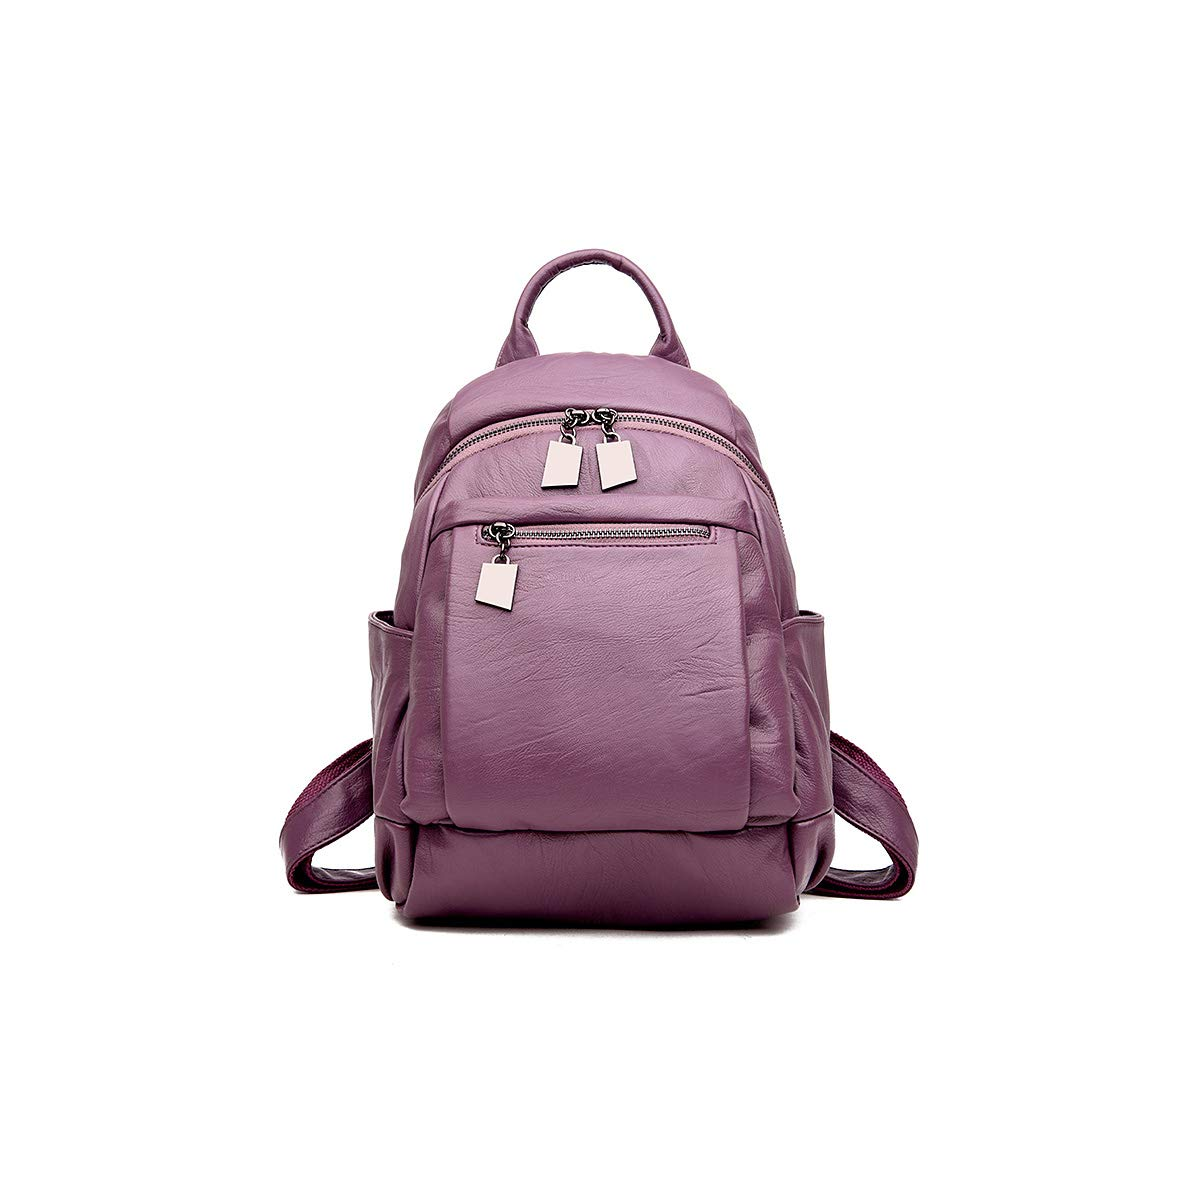 for Women /& Men ZHICHUANG Girls Multipurpose Backpack for Daily Travel//Outdoor//Travel//School//Work//Fashion//Leisure Stylish and Generous Five Colors PU Leather